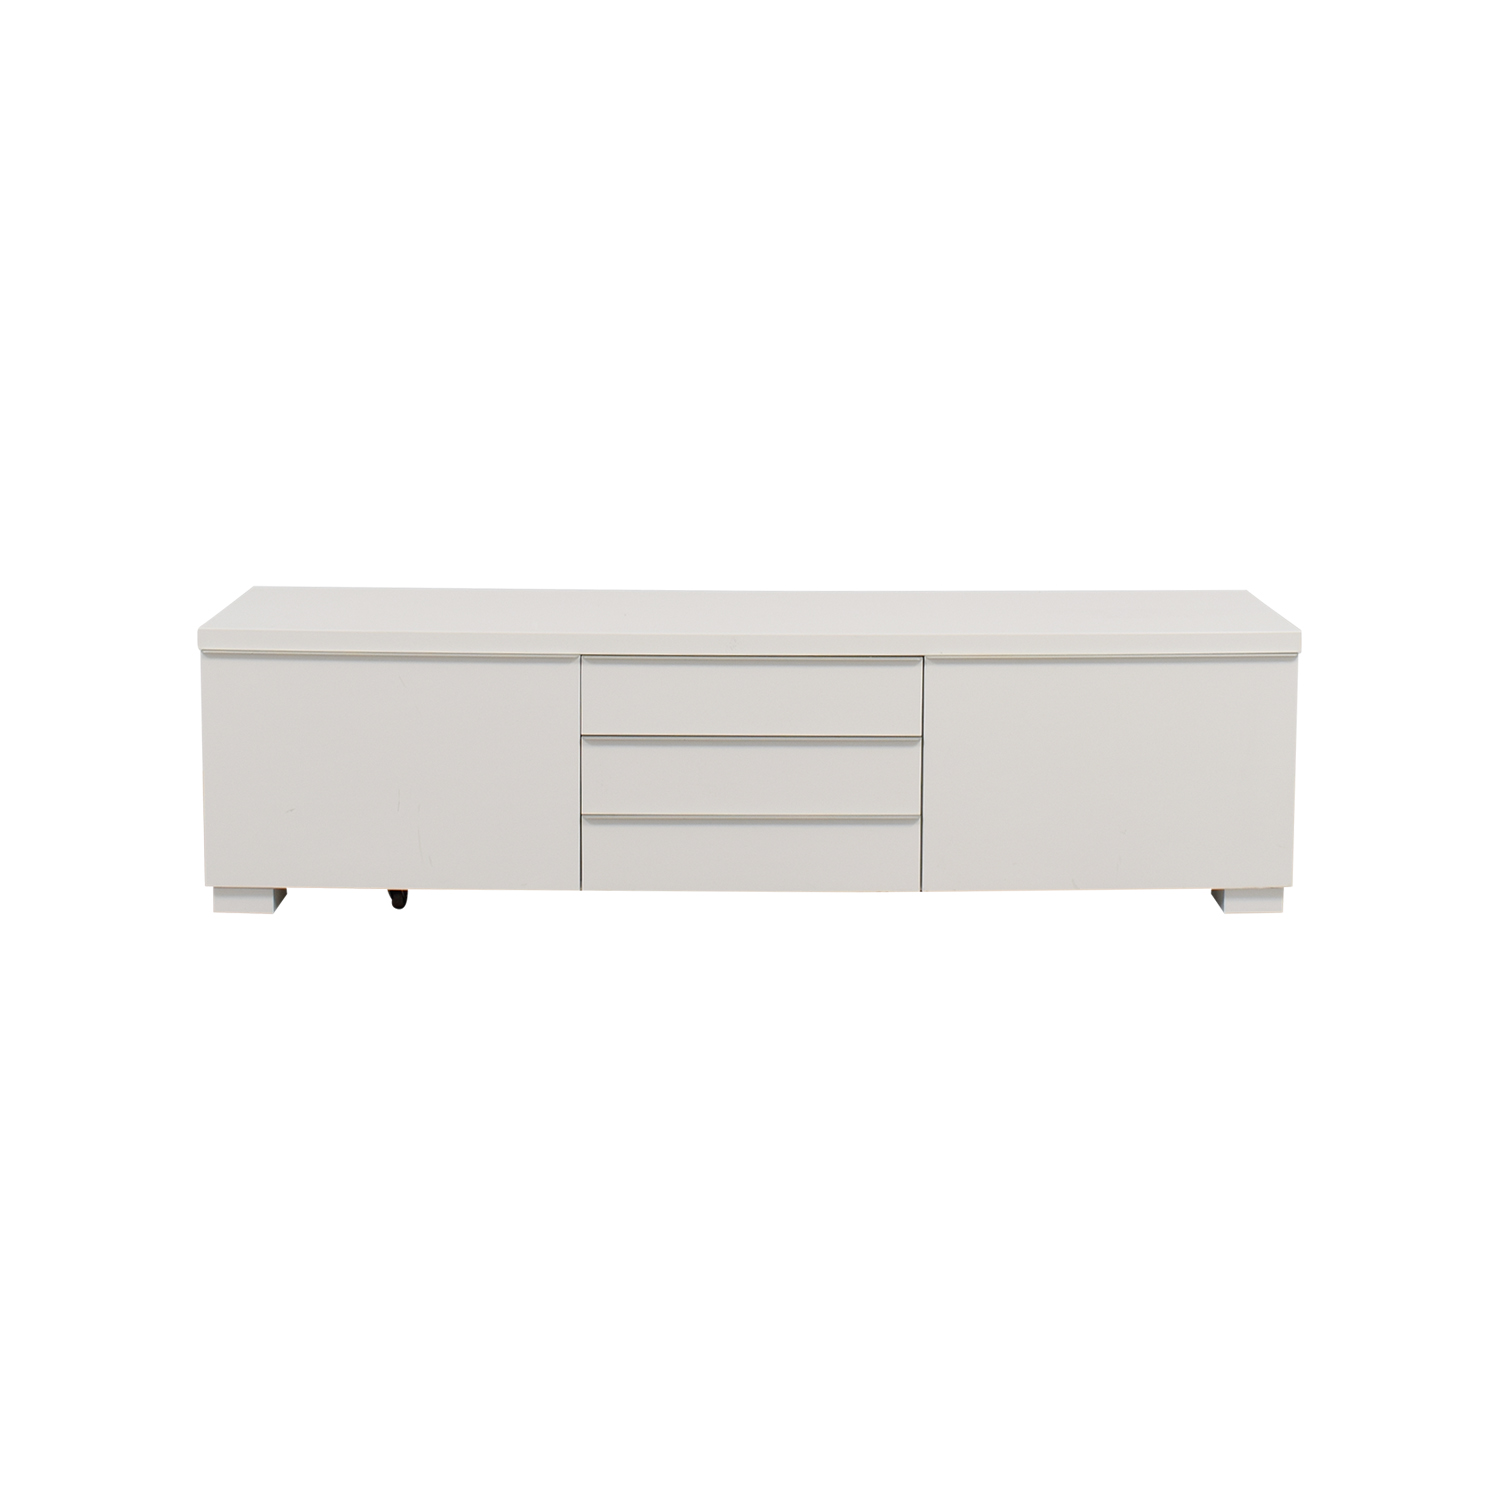 Ikea Tv Sideboard 37 Off Ikea Ikea White Tv Stand With Five Drawers Storage